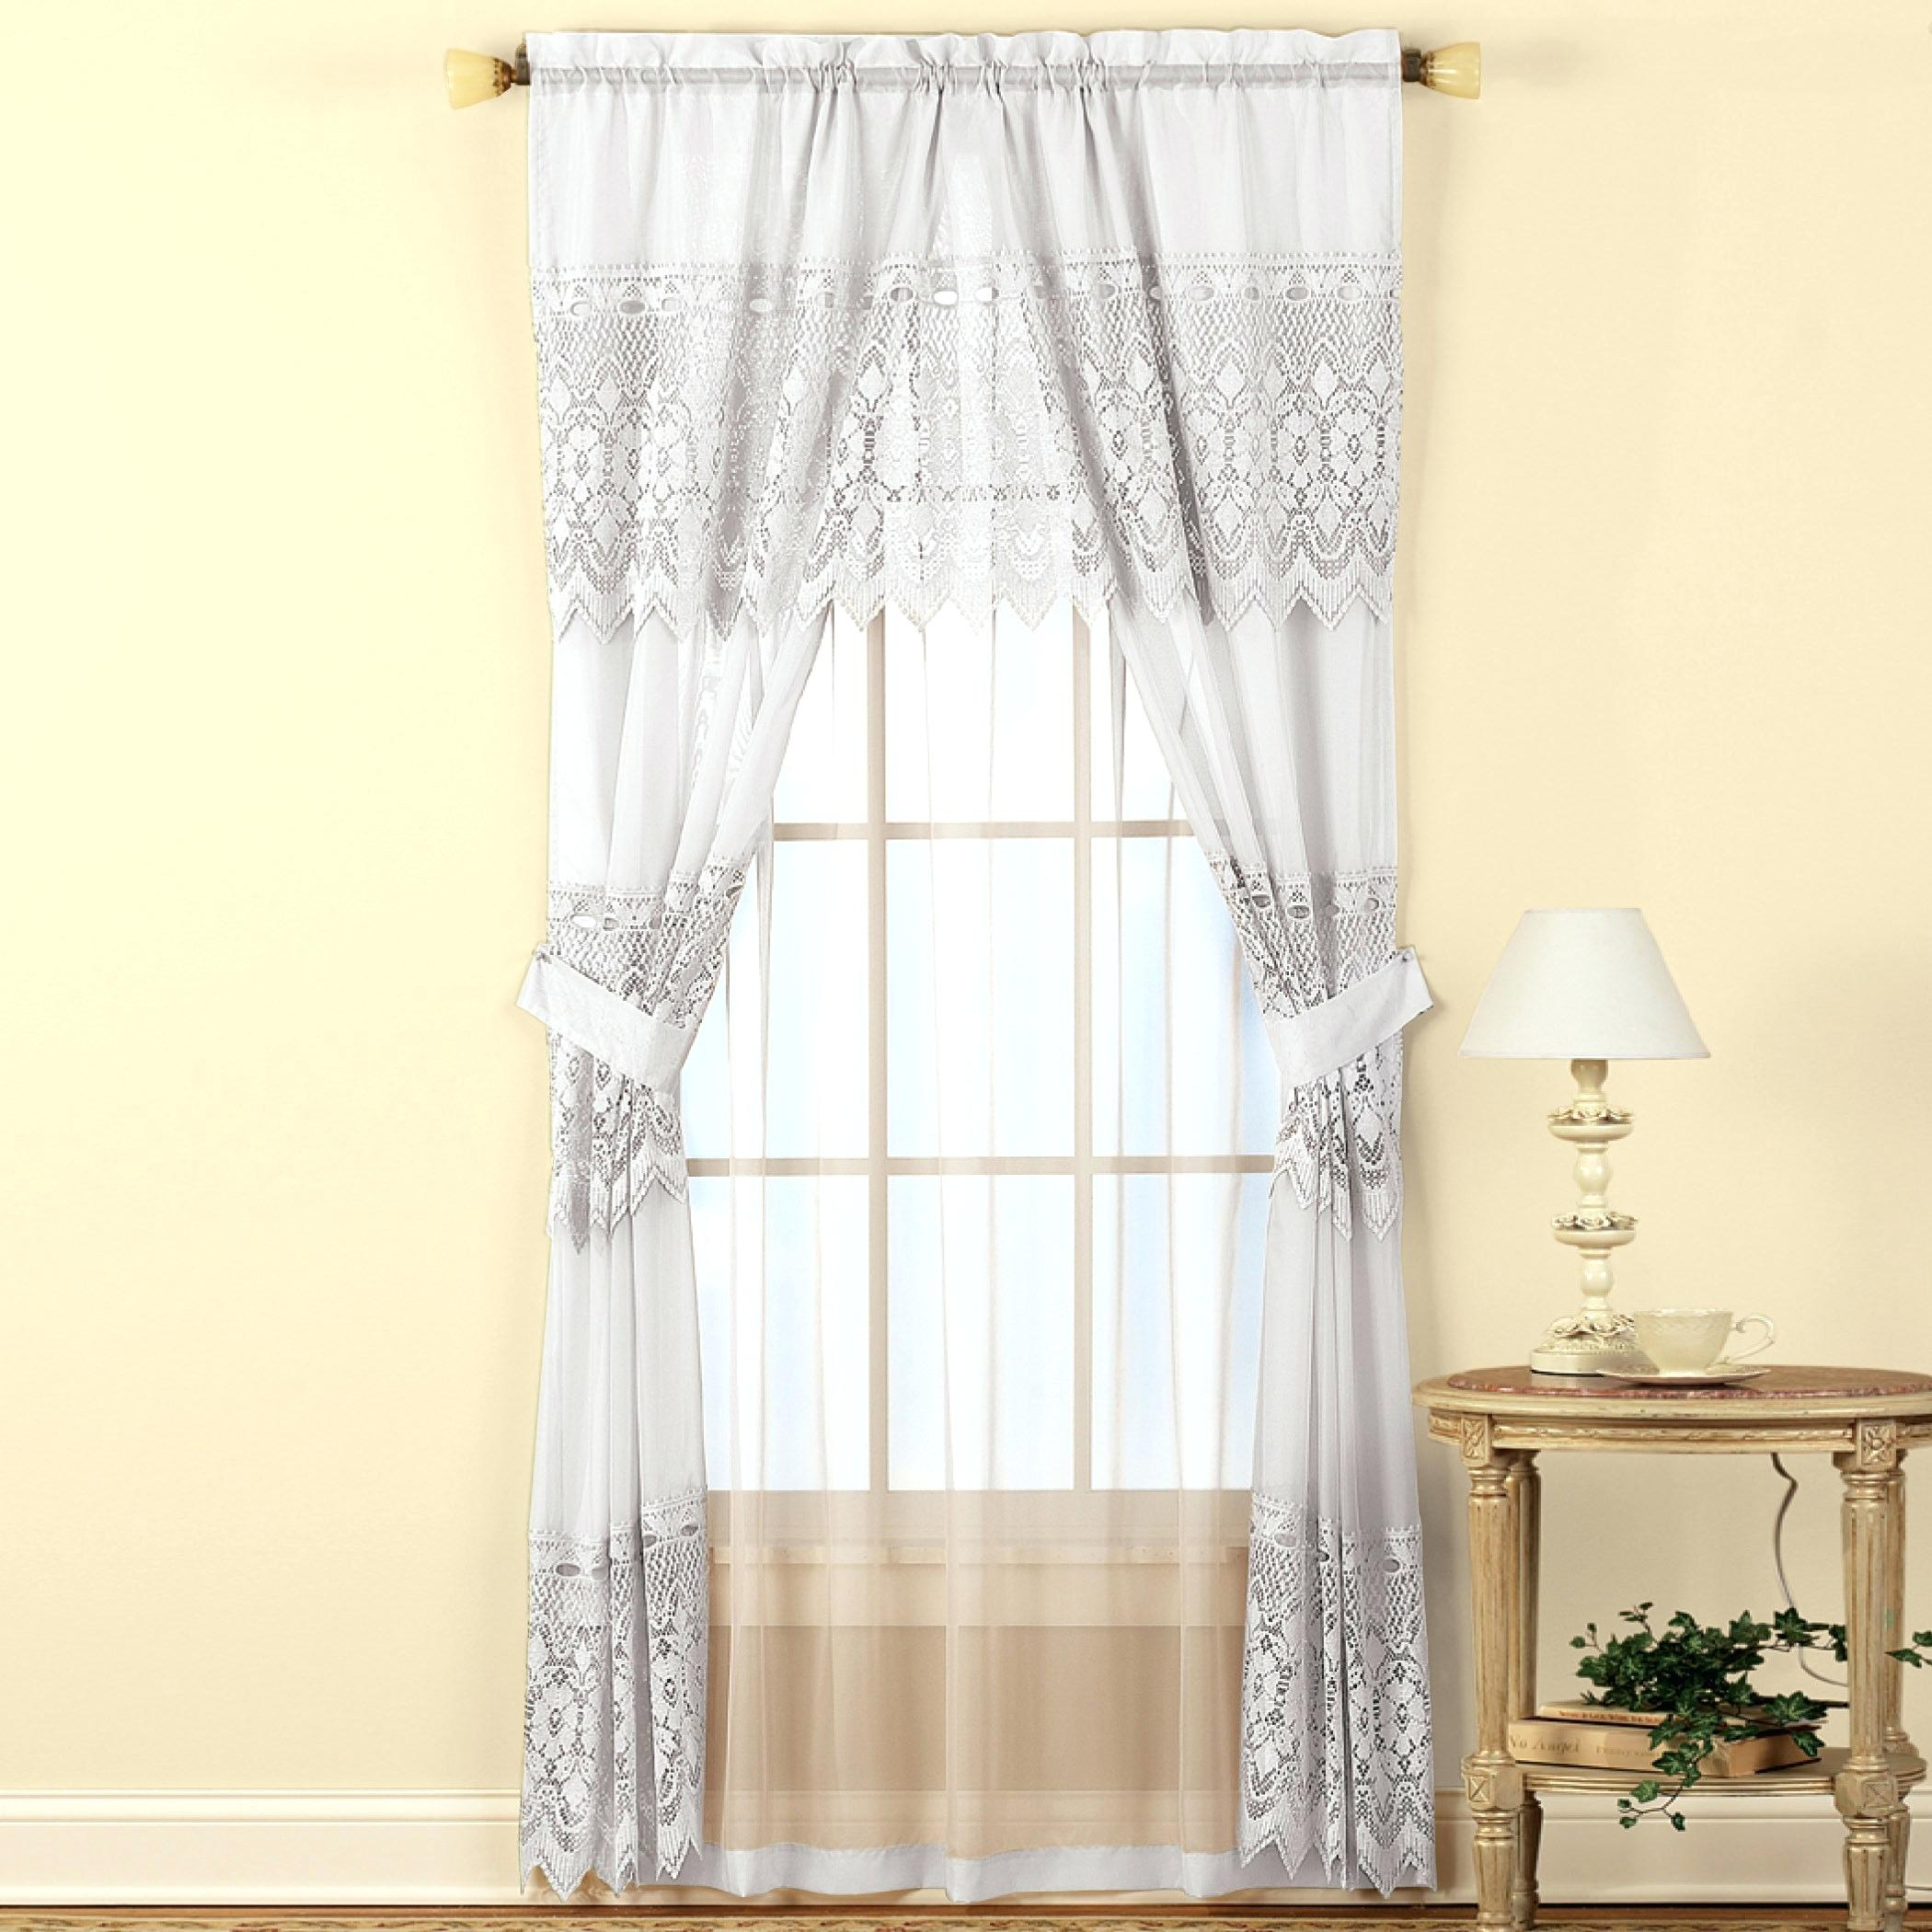 Curtain And Valance Set Throughout Scroll Leaf 3 Piece Curtain Tier And Valance Sets (View 4 of 20)